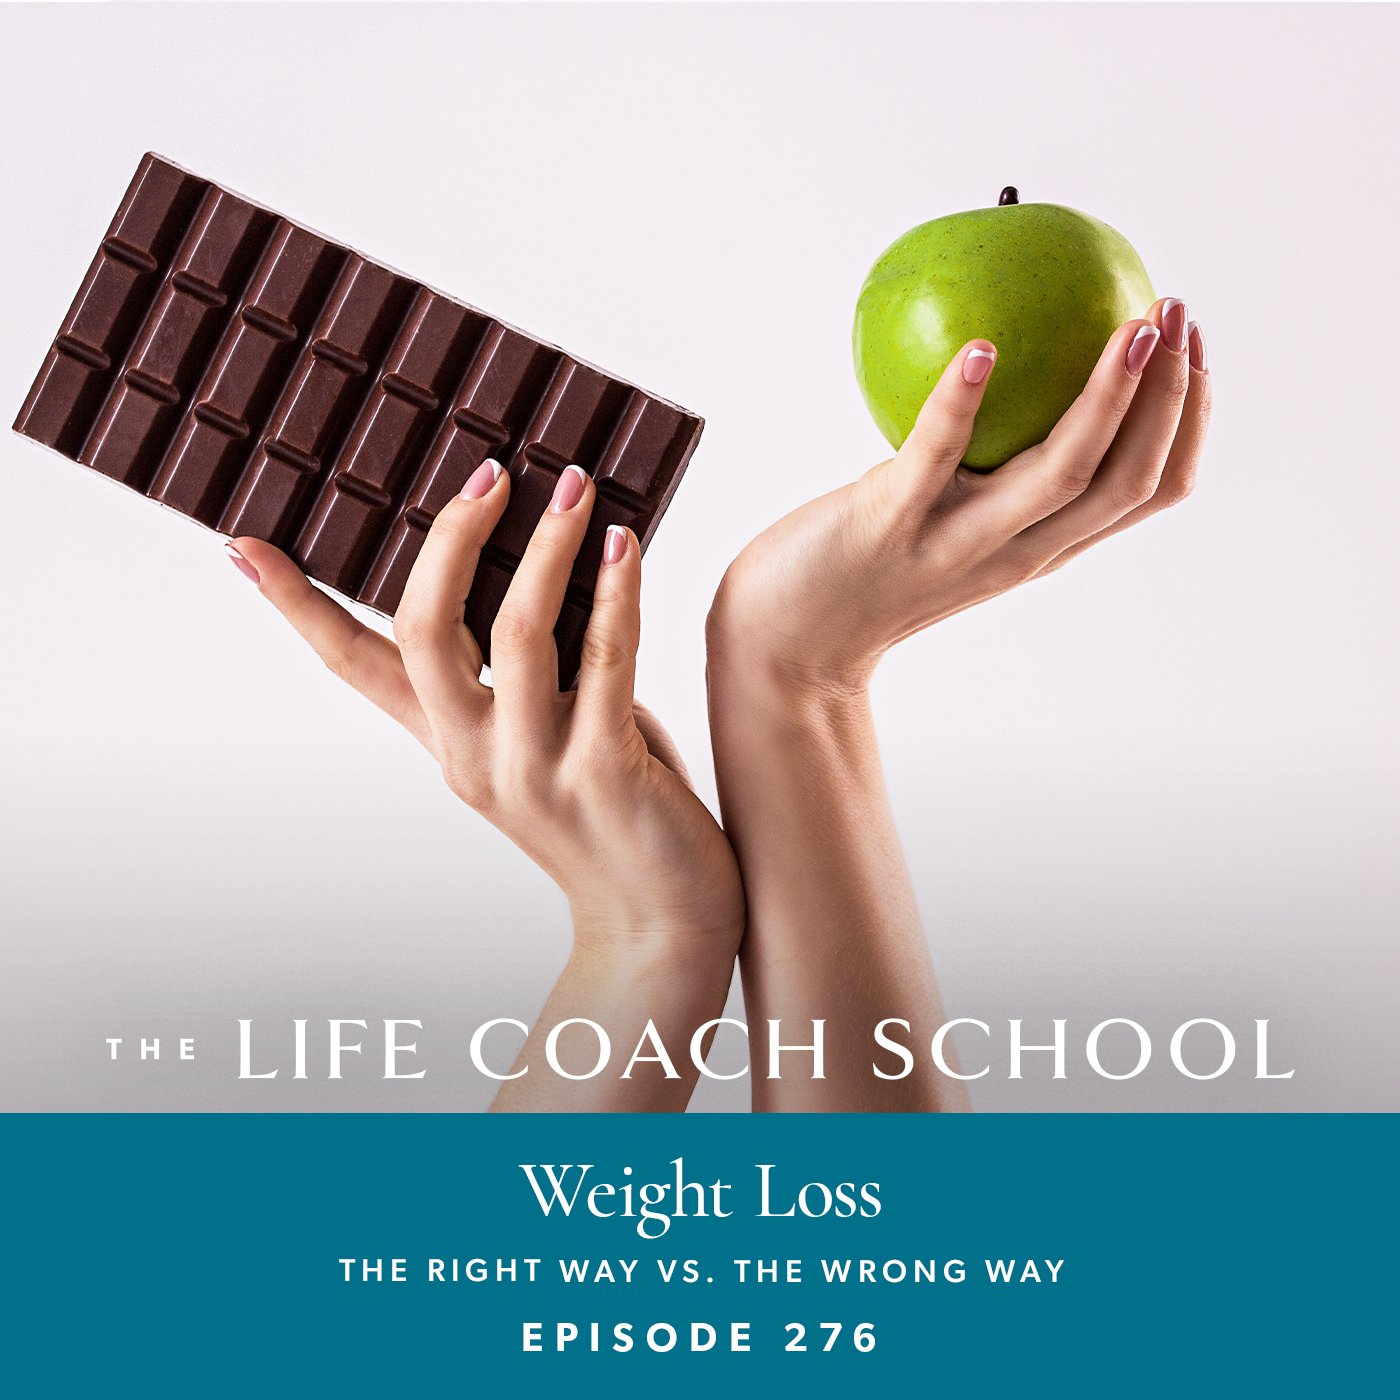 The Life Coach School Podcast with Brooke Castillo   Episode 276   Weight Loss: The Right Way vs The Wrong Way